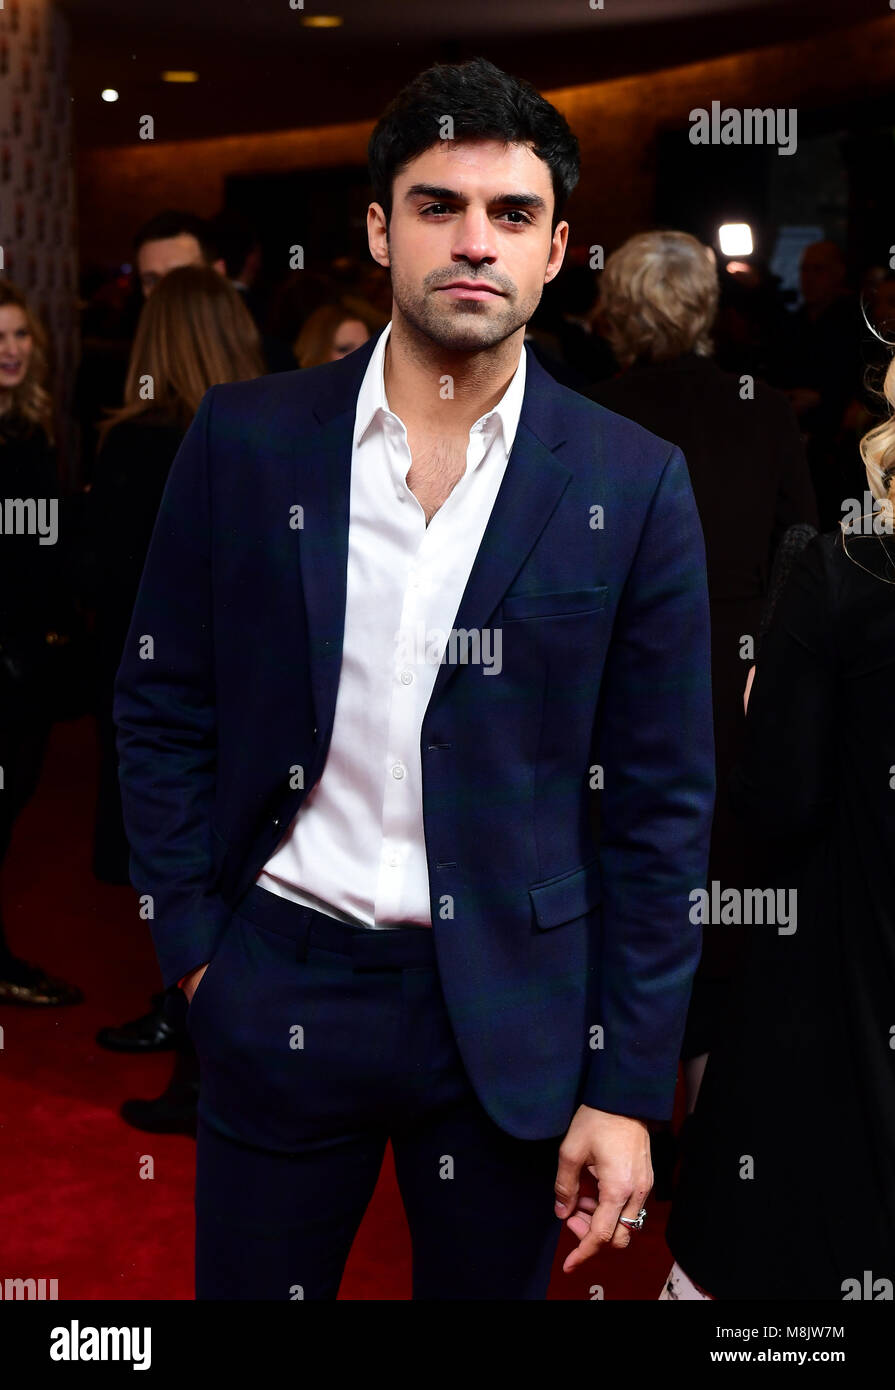 Sean Teale attending the Rakuten TV Empire Awards 2018 at the Roundhouse, London. - Stock Image